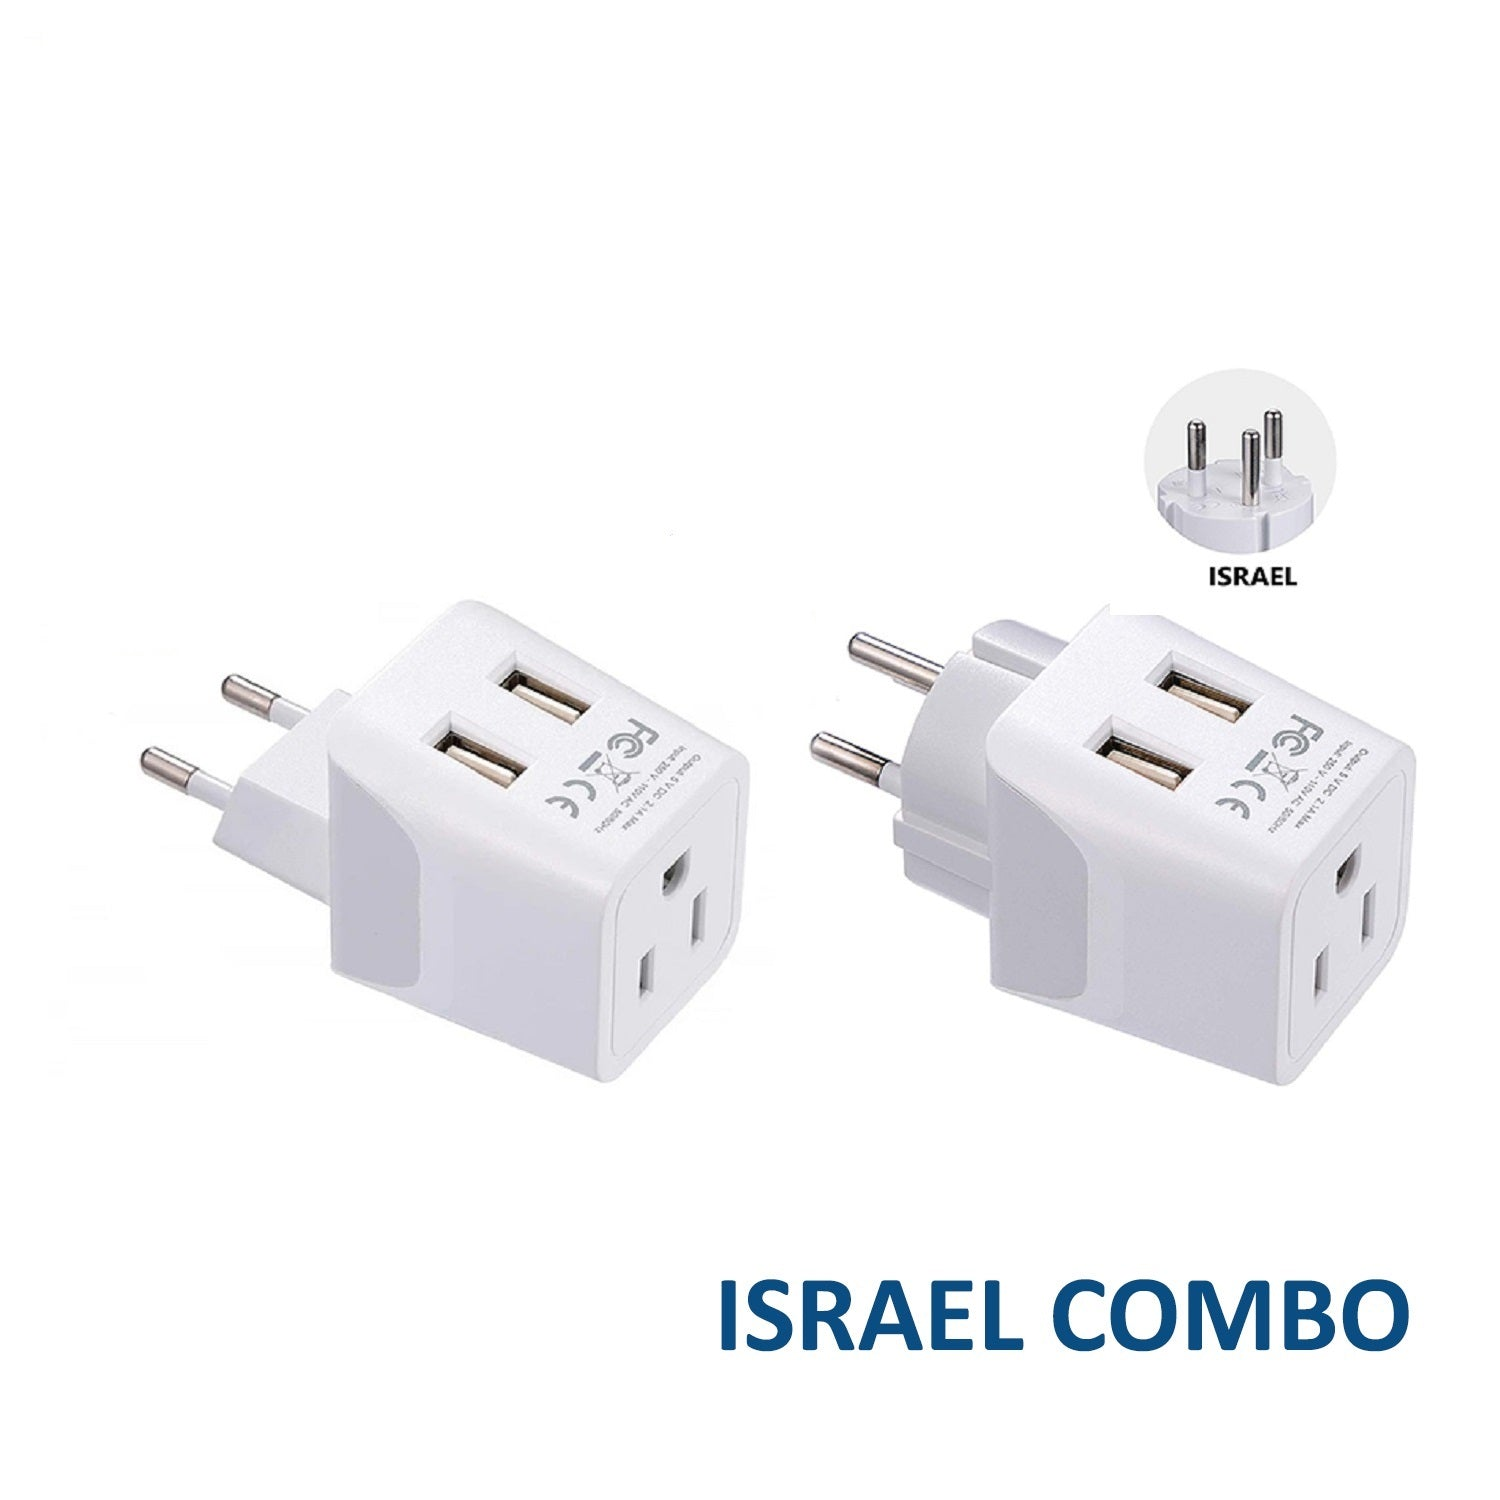 UK, England Travel Adapter - Type G - Ultra Compact (CTU-7-2PK, 2 Pack)